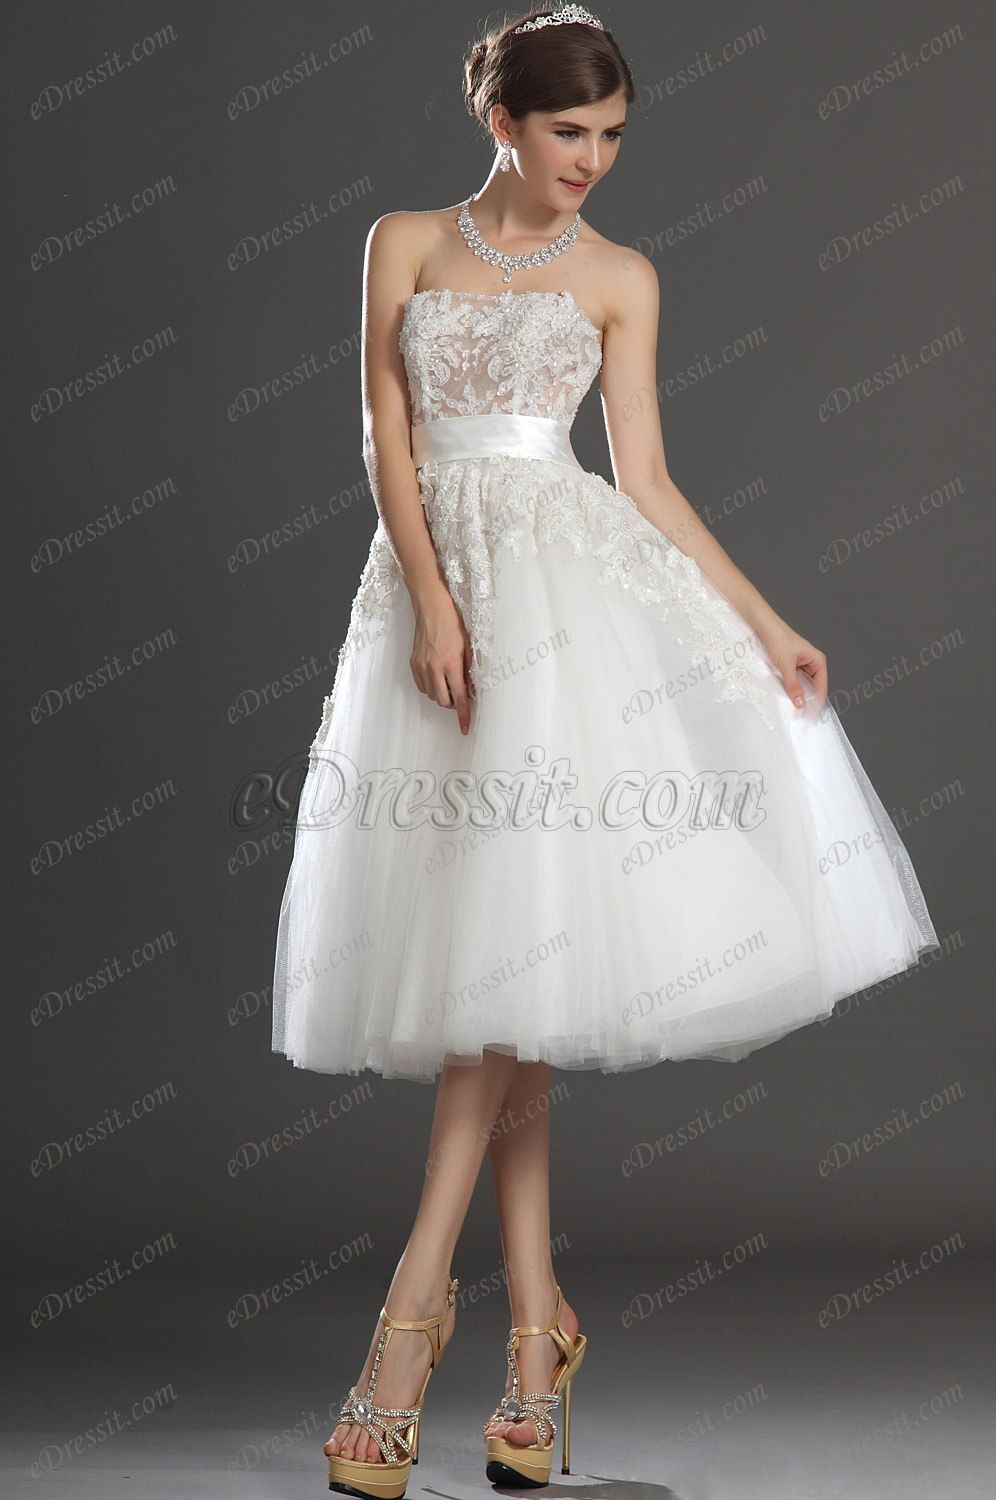 Lovely Short Strapless Lace Bodice Wedding Dress